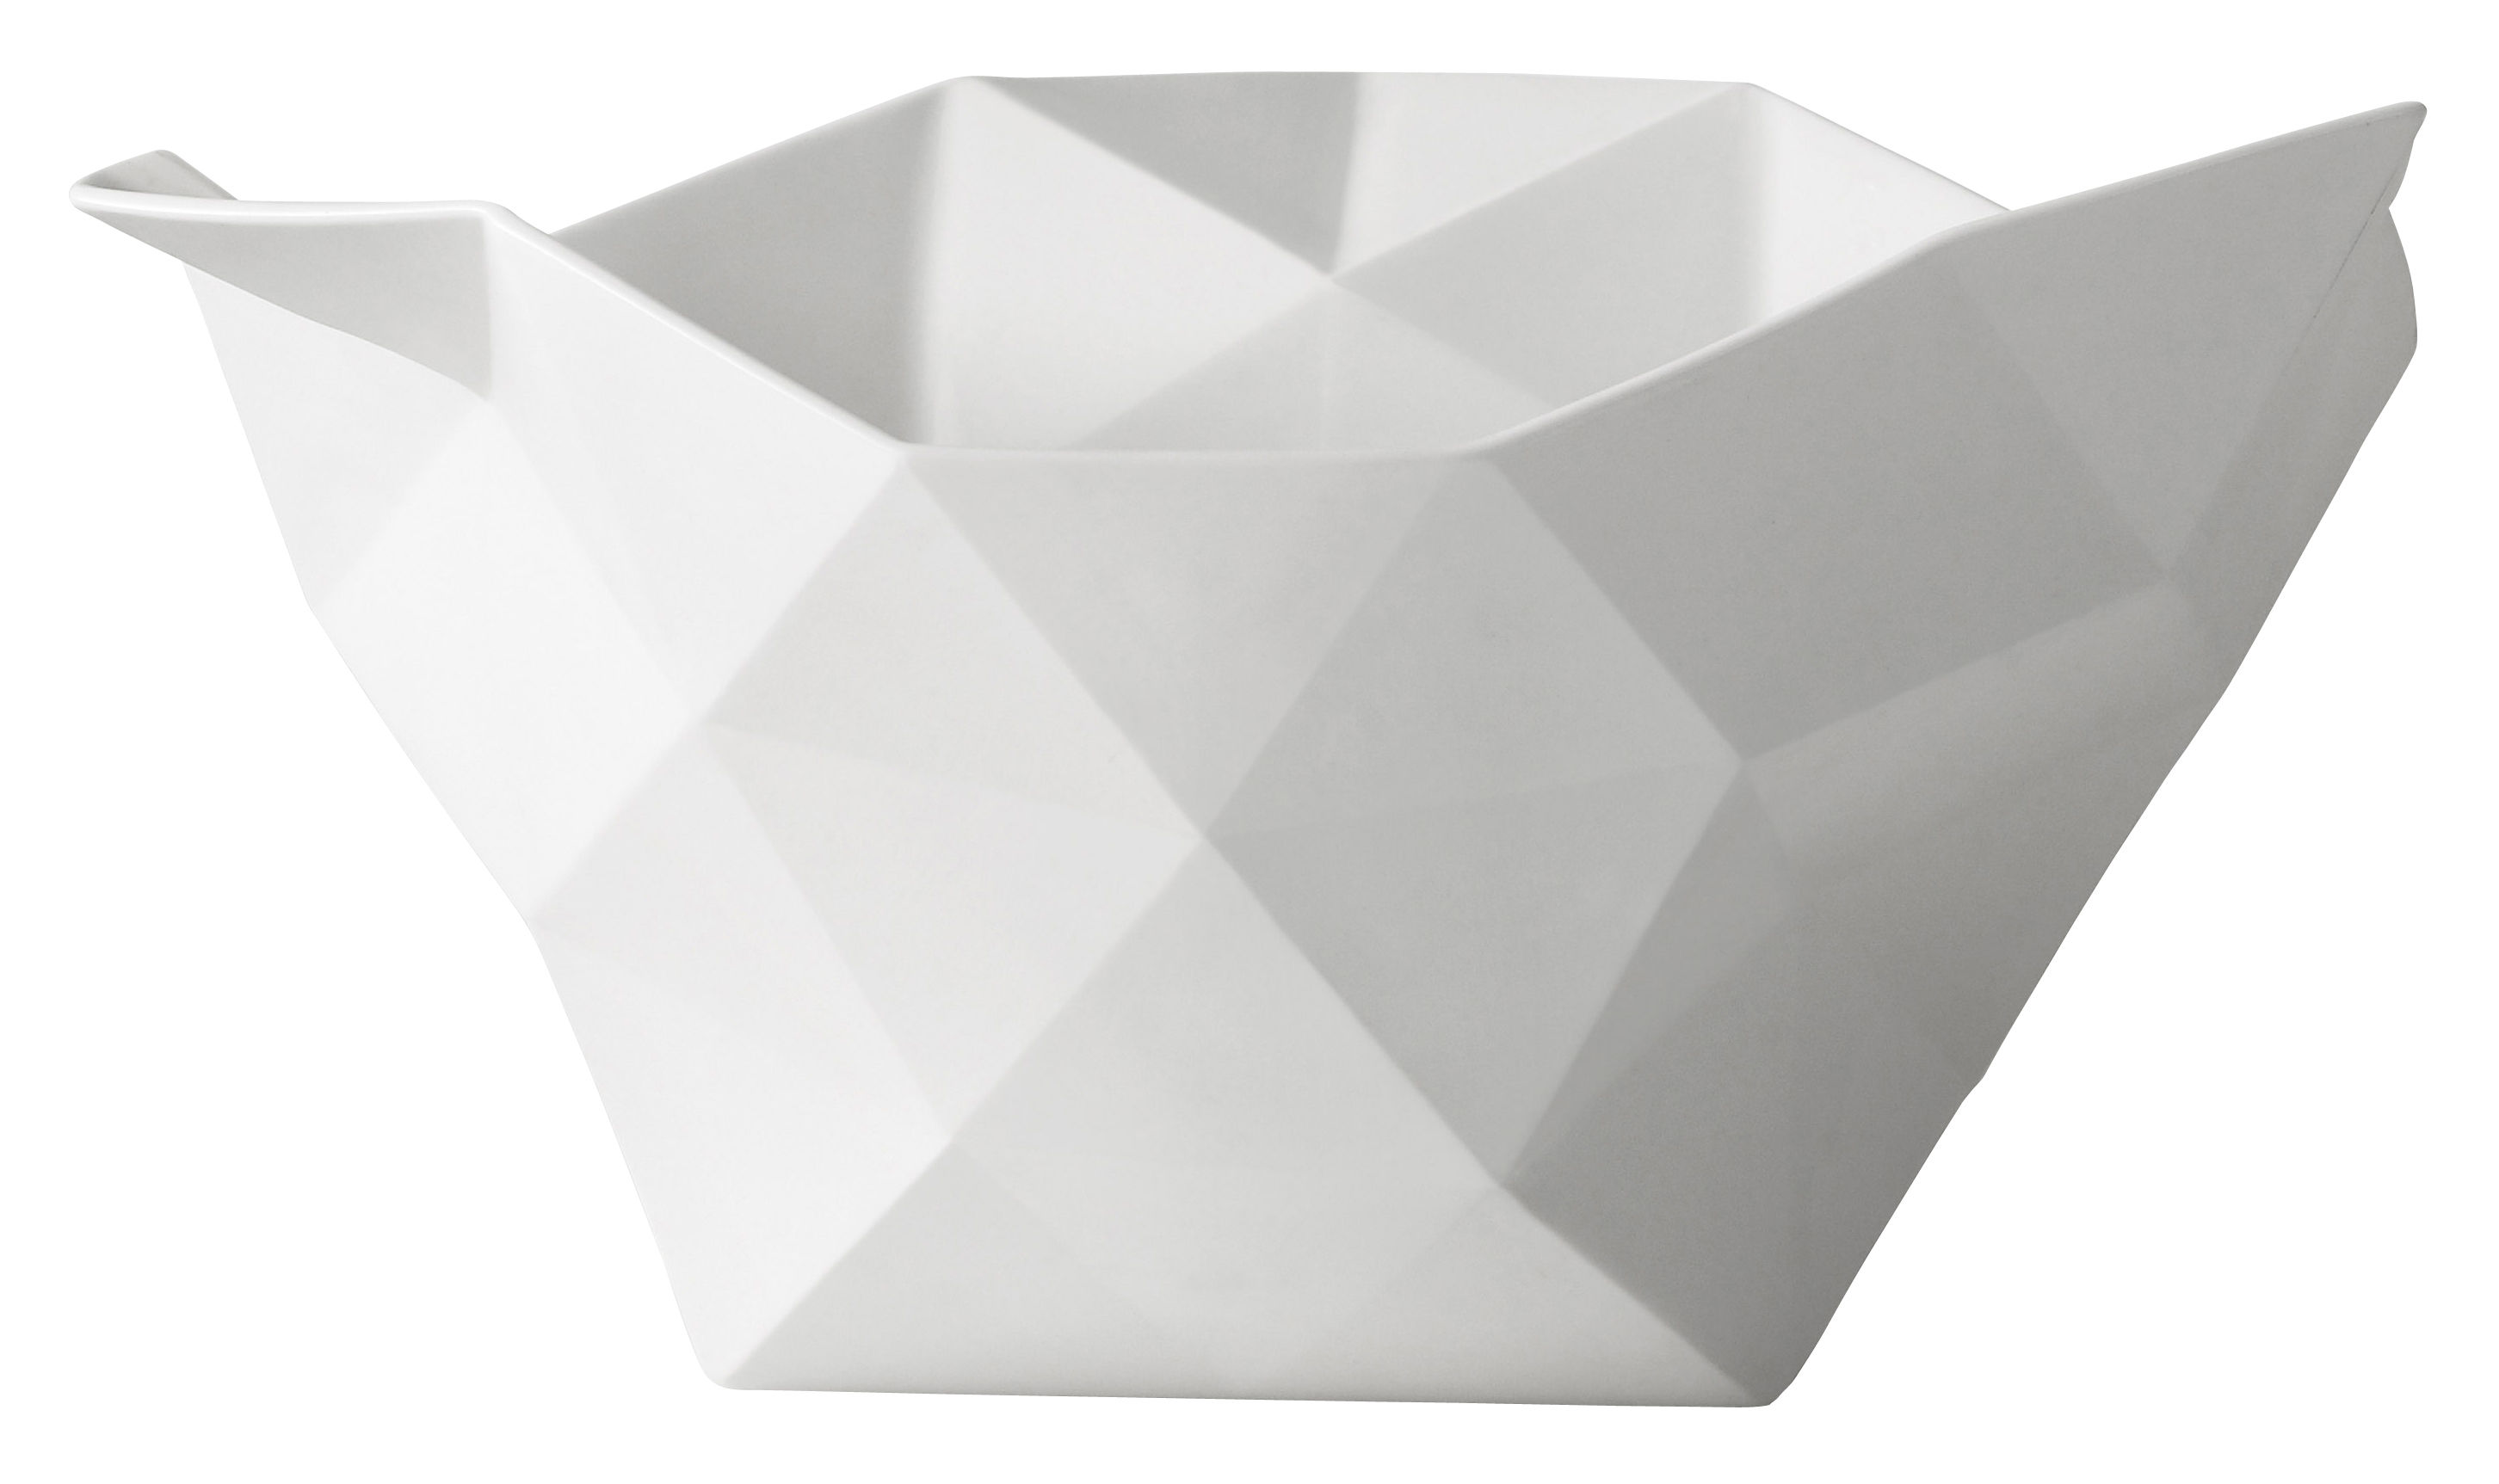 Tableware - Bowls - Crushed Bowl - Large by Muuto - White - Large - Bone china